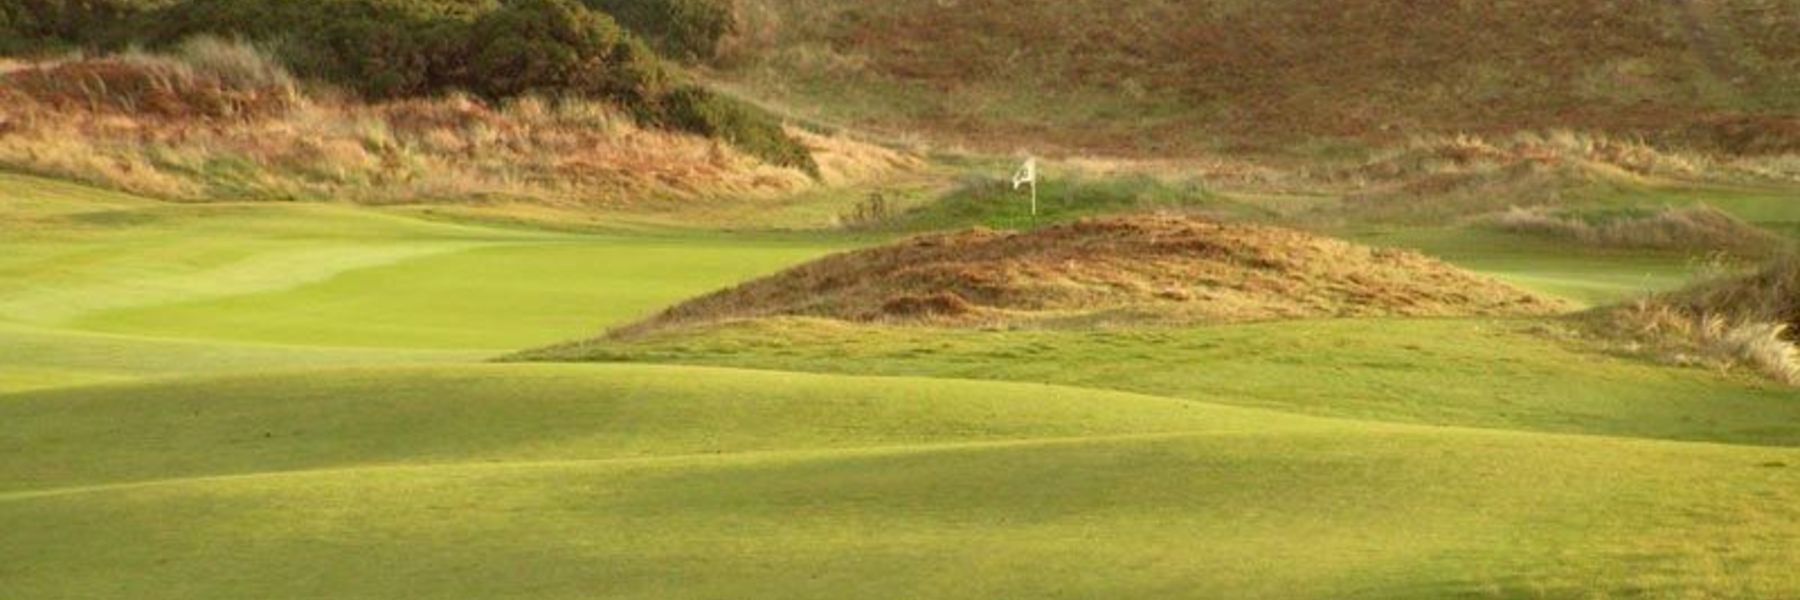 Golf Vacation Package - Northern Ireland/Western Scotland - 7 Nights + 7 Rounds + Car for $2999!